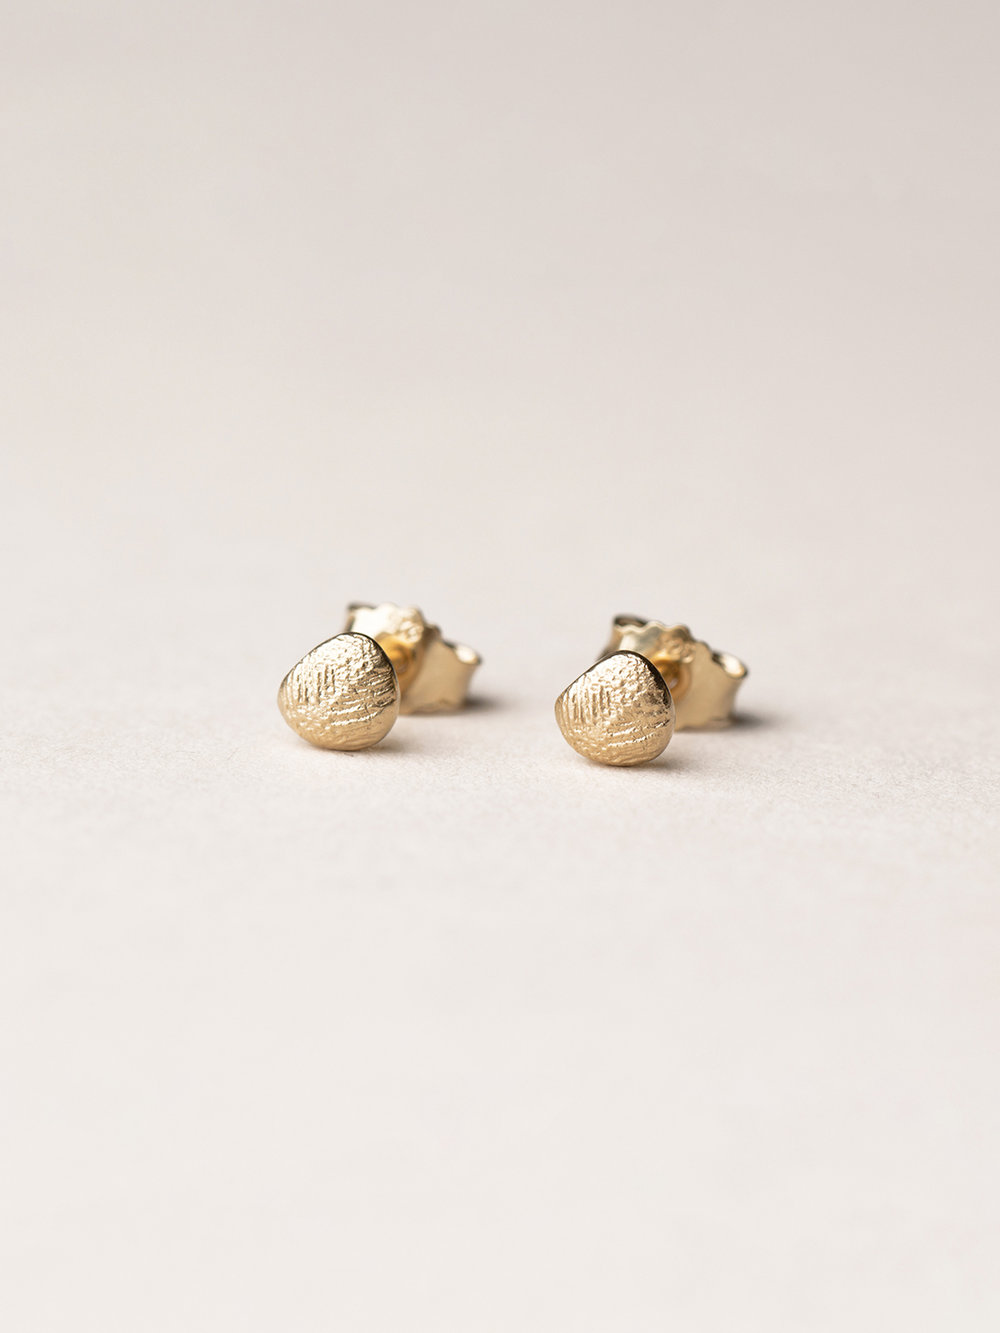 Amia-Punkt-Ohrstecker in 585 Gelbgold  Amia earstuds in 14kt gold